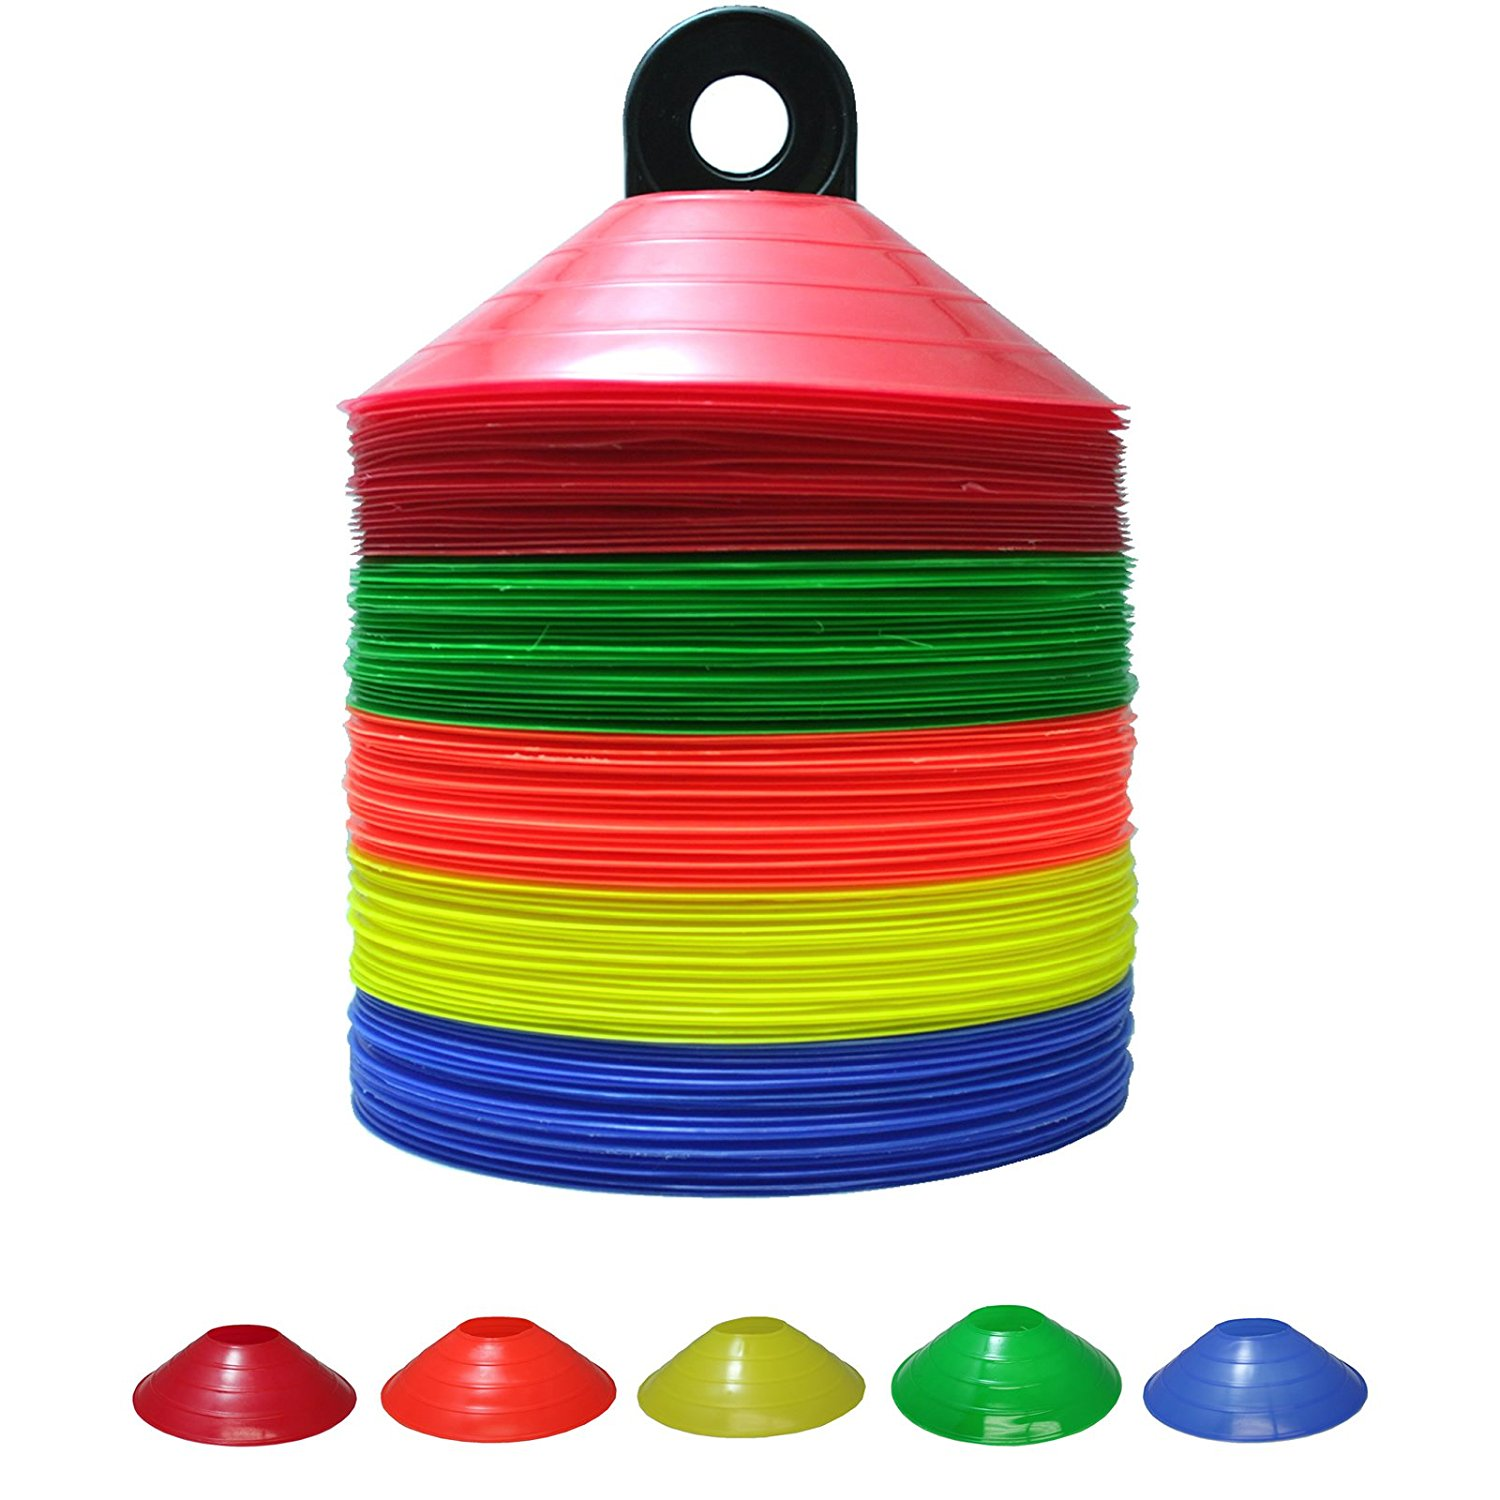 50 Disc Cones Soccer Football Field Marking Coaching Cones - Assorted Colors ... By Bluedot Trading